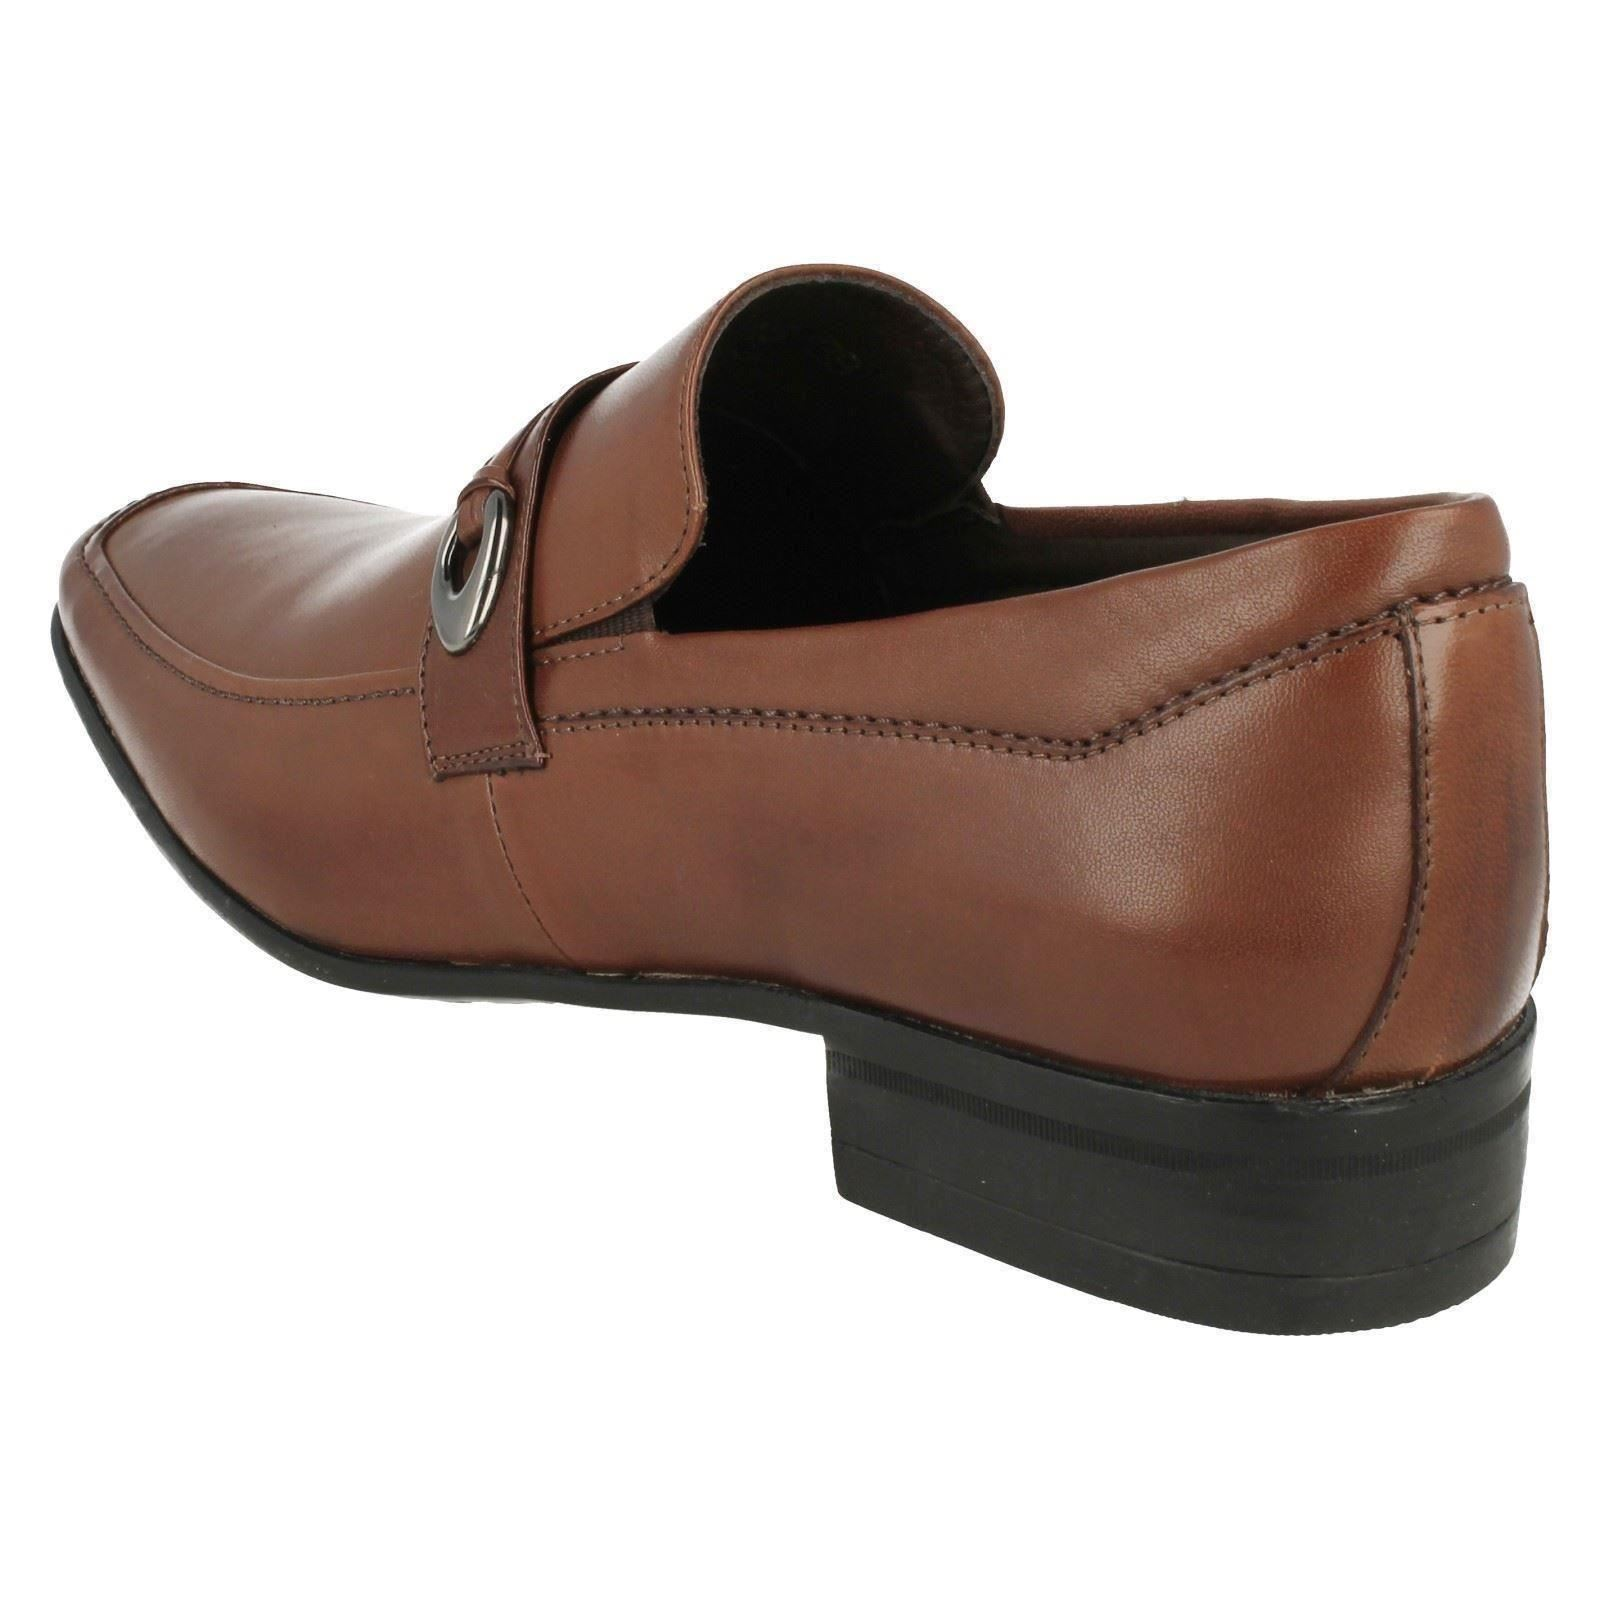 Uomo Anatomic Goiania Prime Smart Dress Schuhes Goiania Anatomic 8c1b08